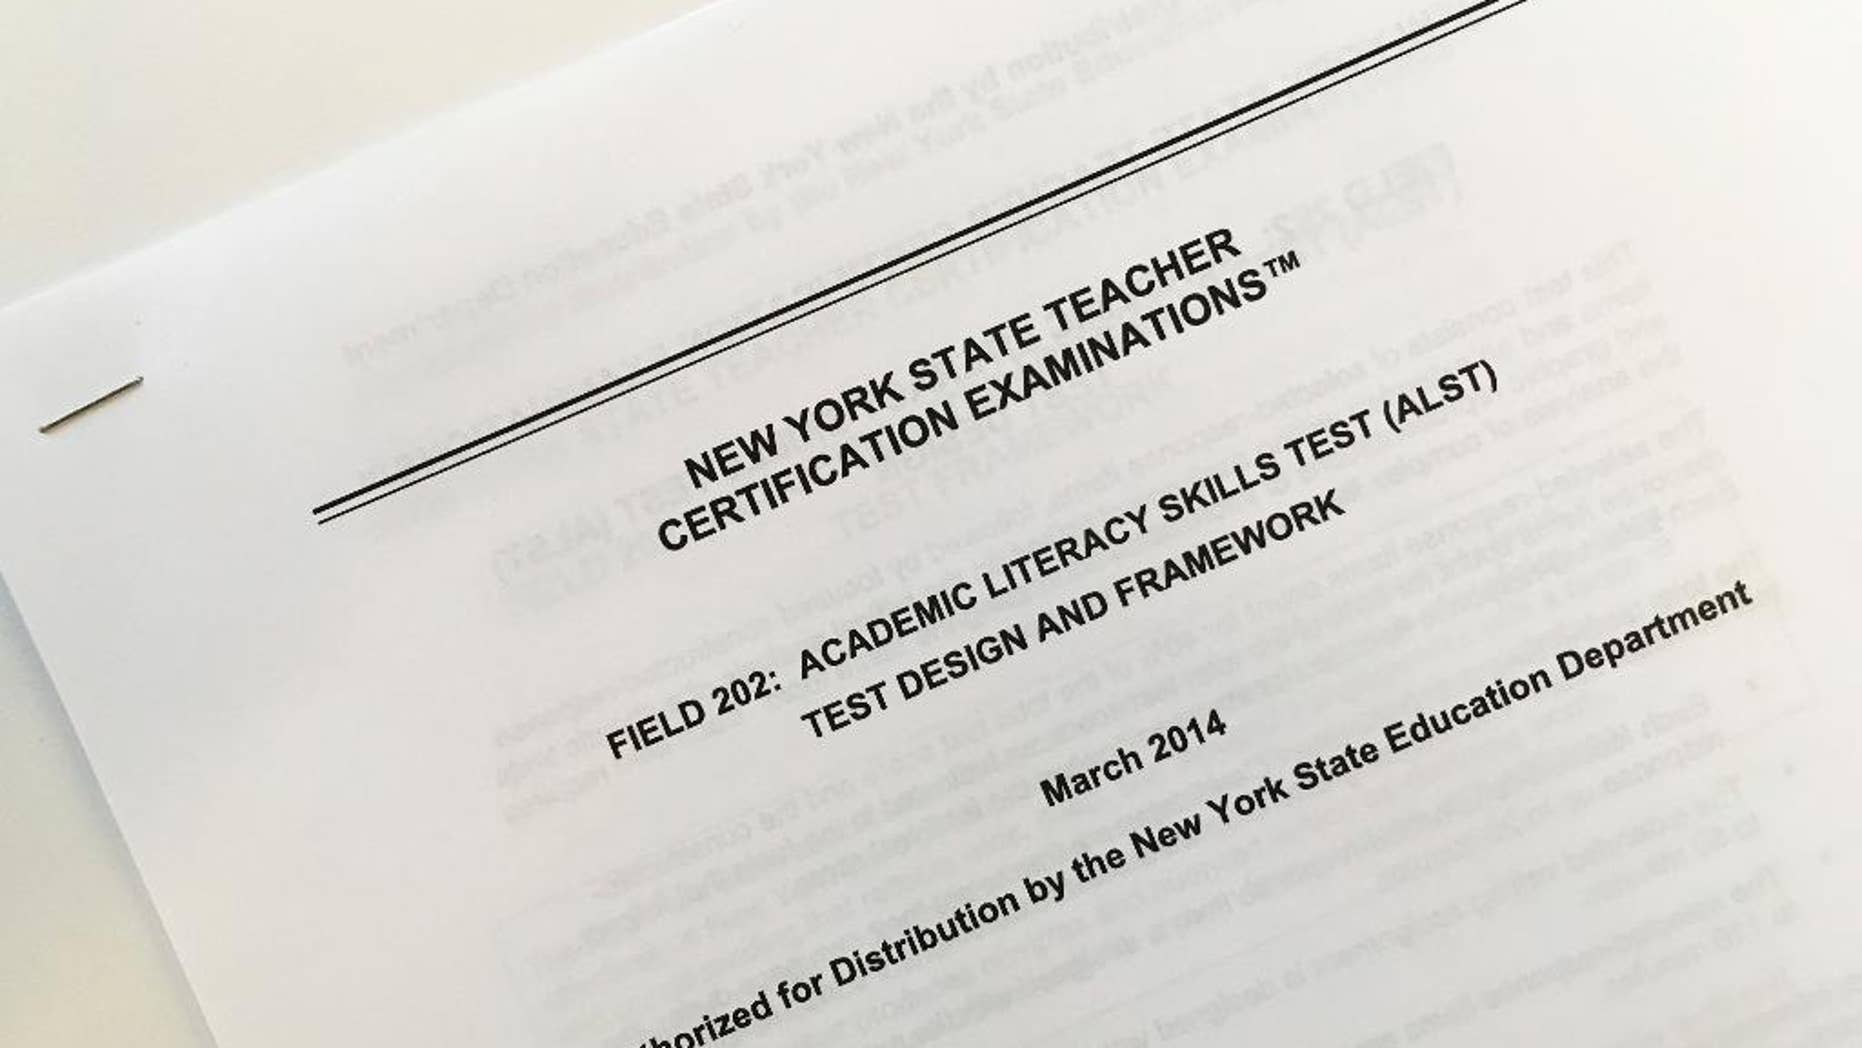 This March 8, 2017 photo shows the front page of a document explaining a certification exam known as the Academic Literacy Skills Test, designed to measure the reading and writing skills of aspiring teachers, in New York. New York state education officials are poised to scrap the test which critics say is racially biased, redundant and a poor predictor of who will succeed as teacher. But backers of the test say eliminating it could put weak teachers in classrooms. (AP Photo/Barbara Woike)